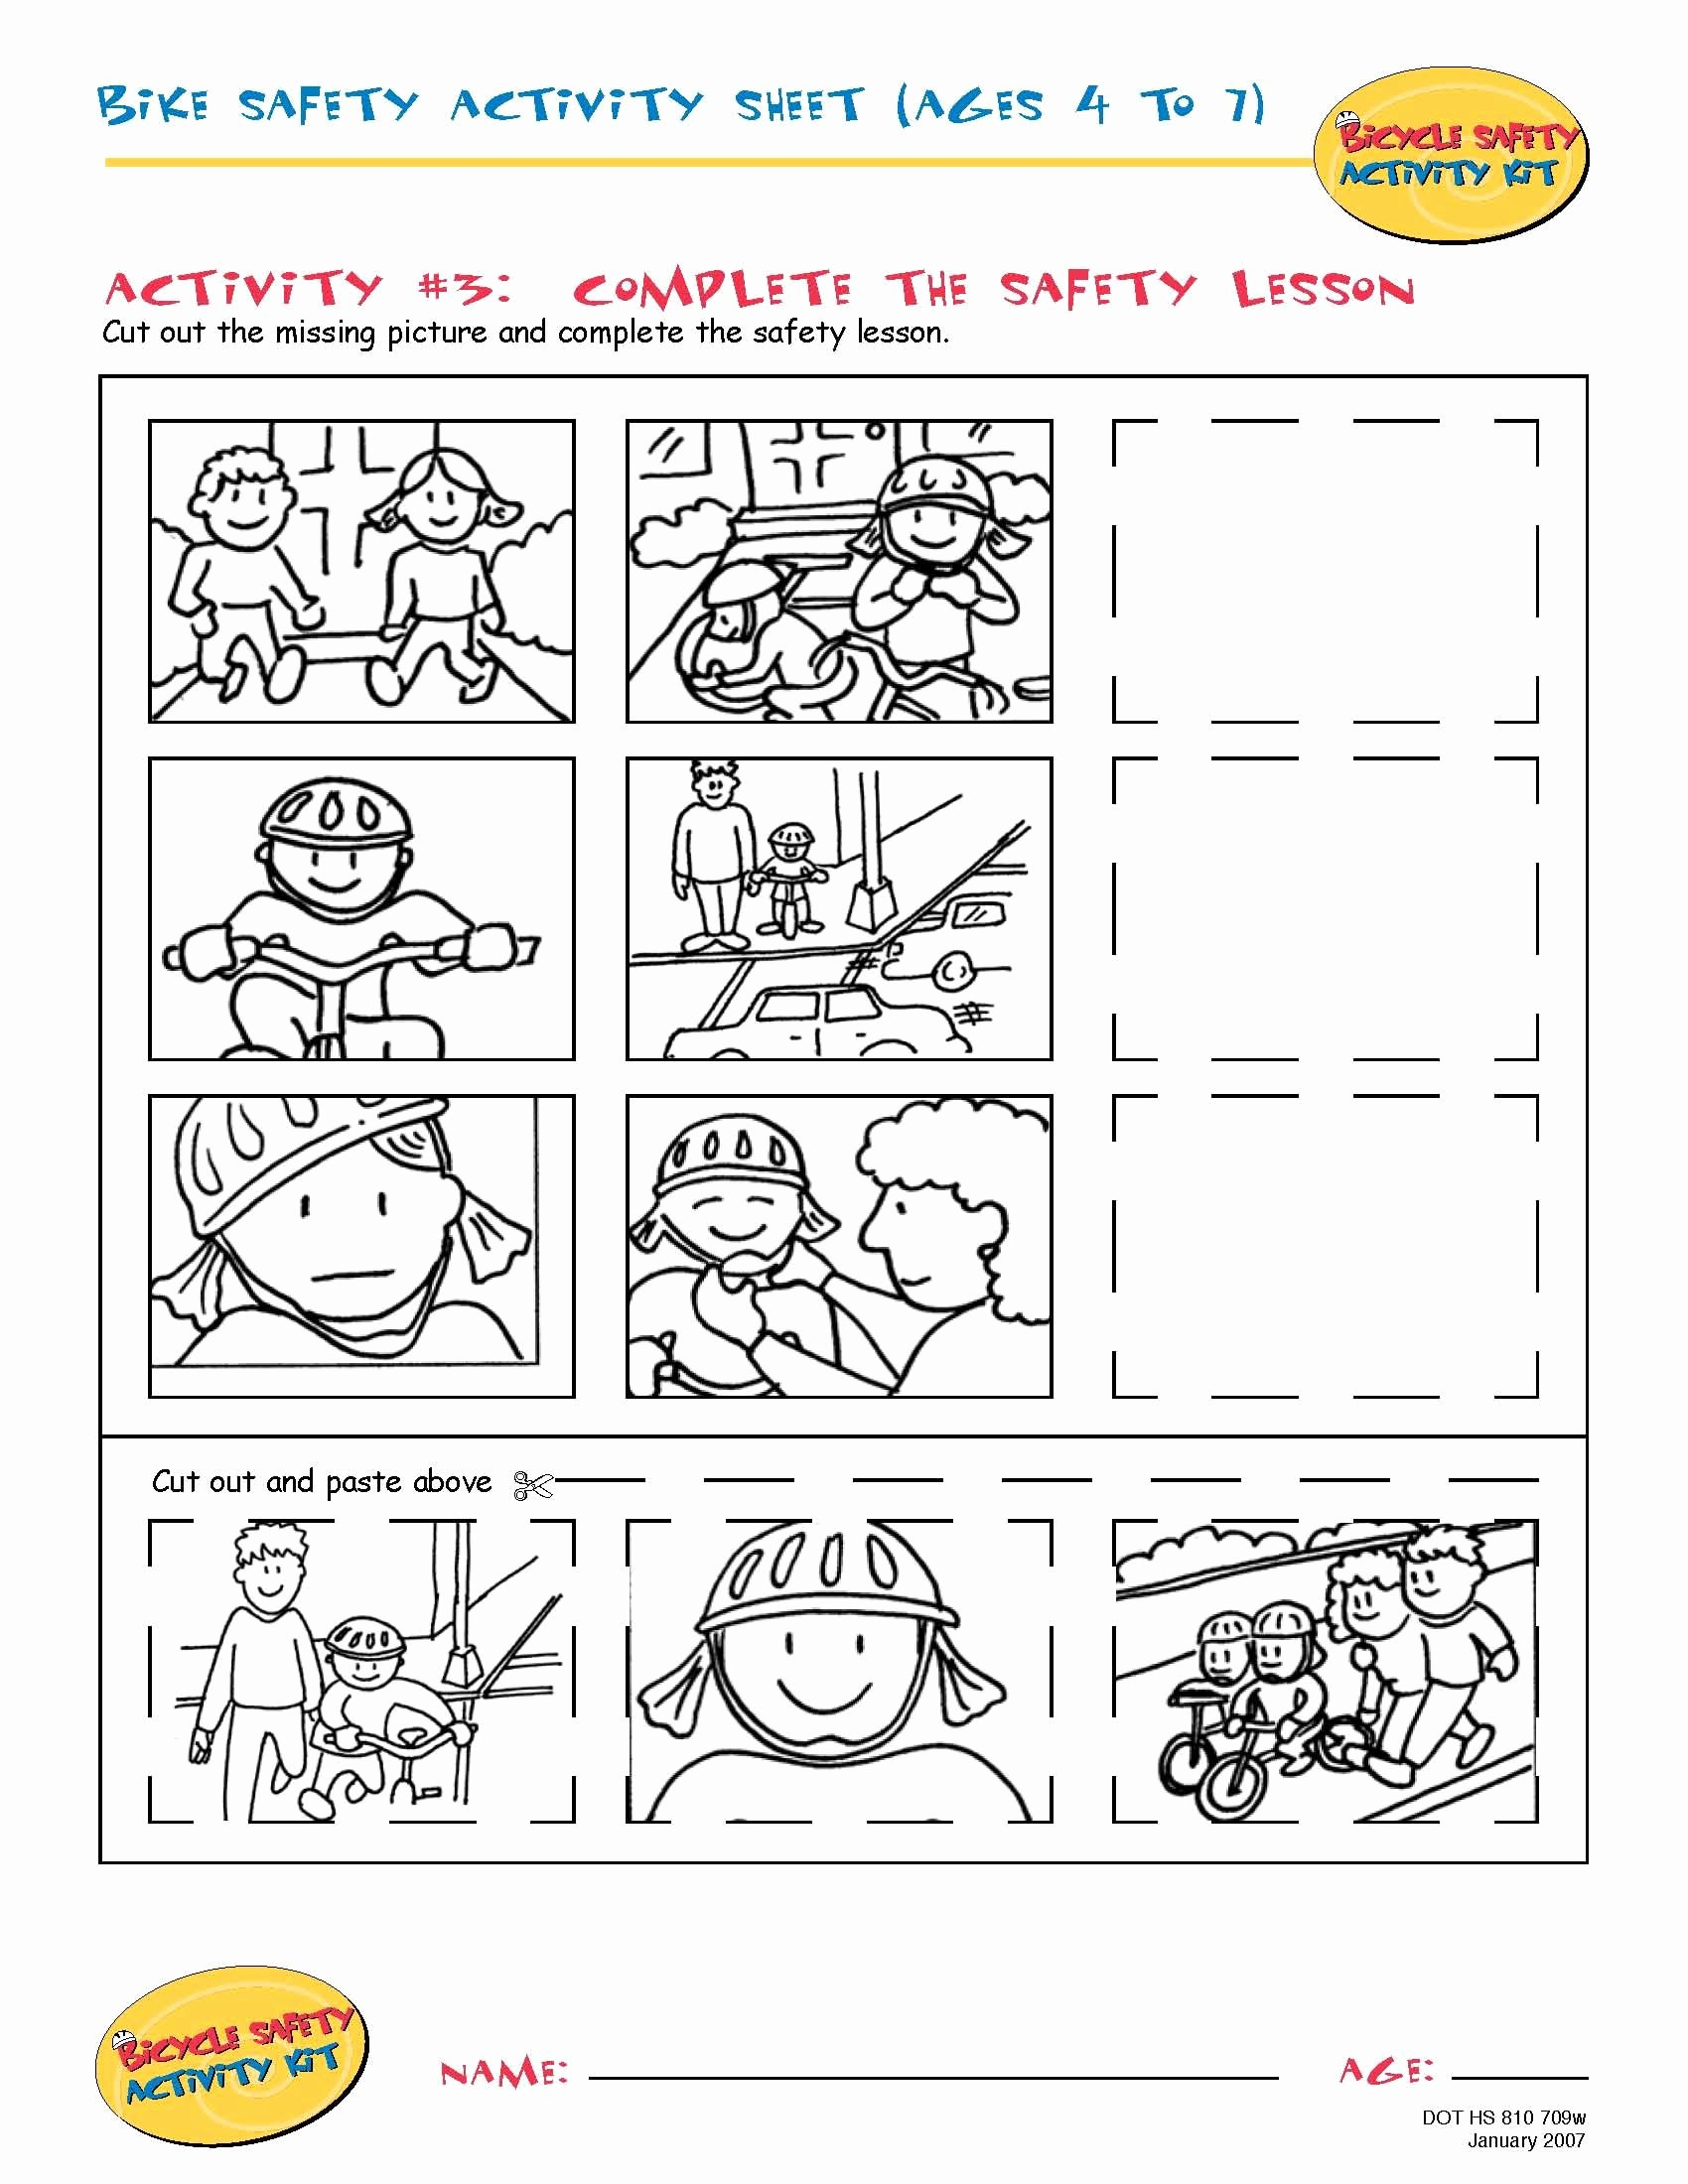 Safety Worksheets for Preschoolers Best Of Bike Safety Activity Sheet Ages 4 to 11 Plete the